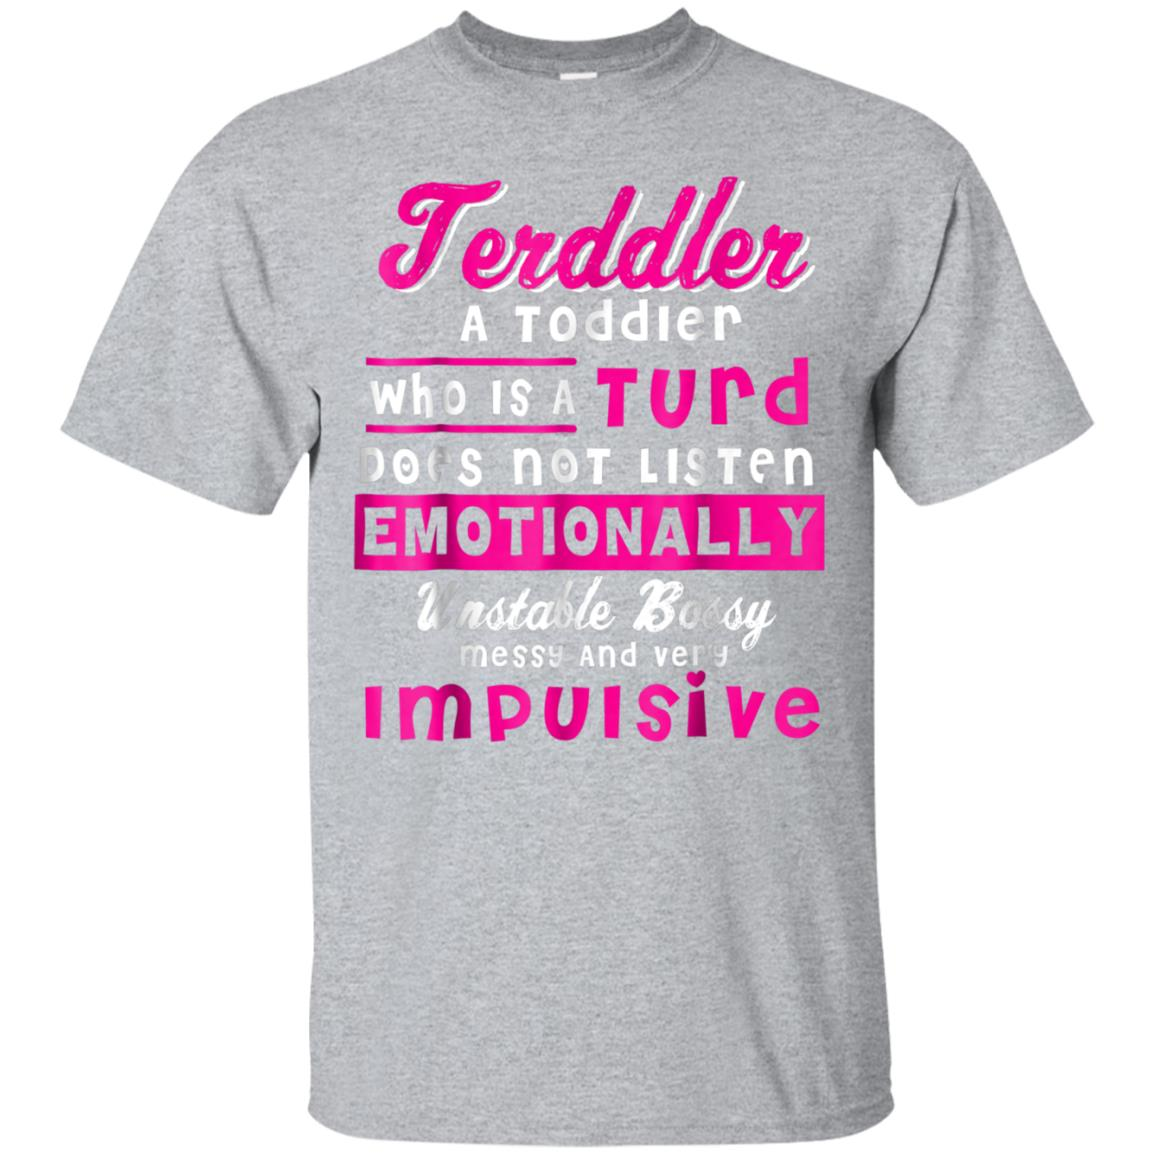 Terddler A Toddler Who Is A Turd Funny Toddler Girls T-Shirt 99promocode